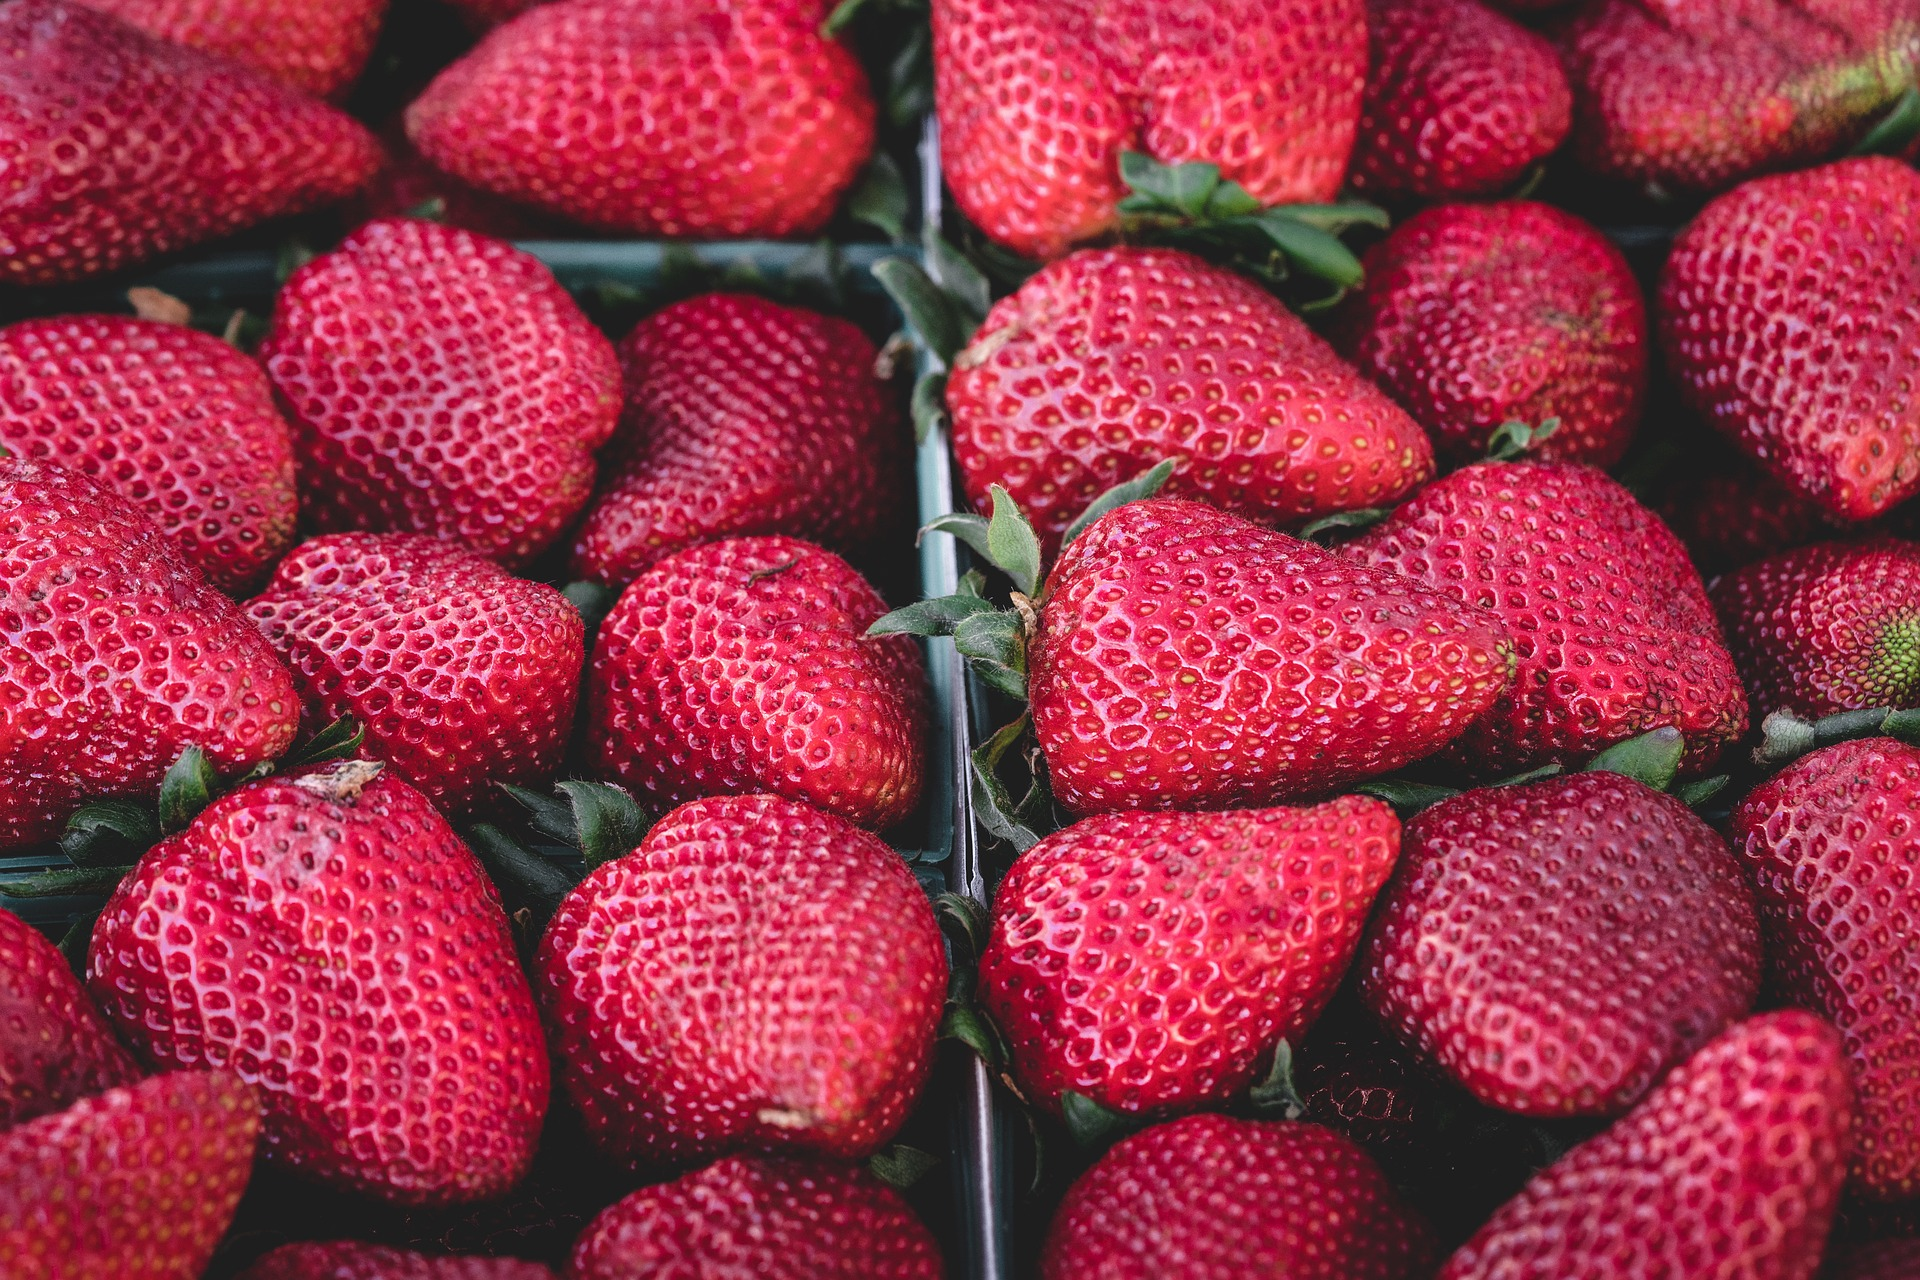 strawberries-1326148_1920